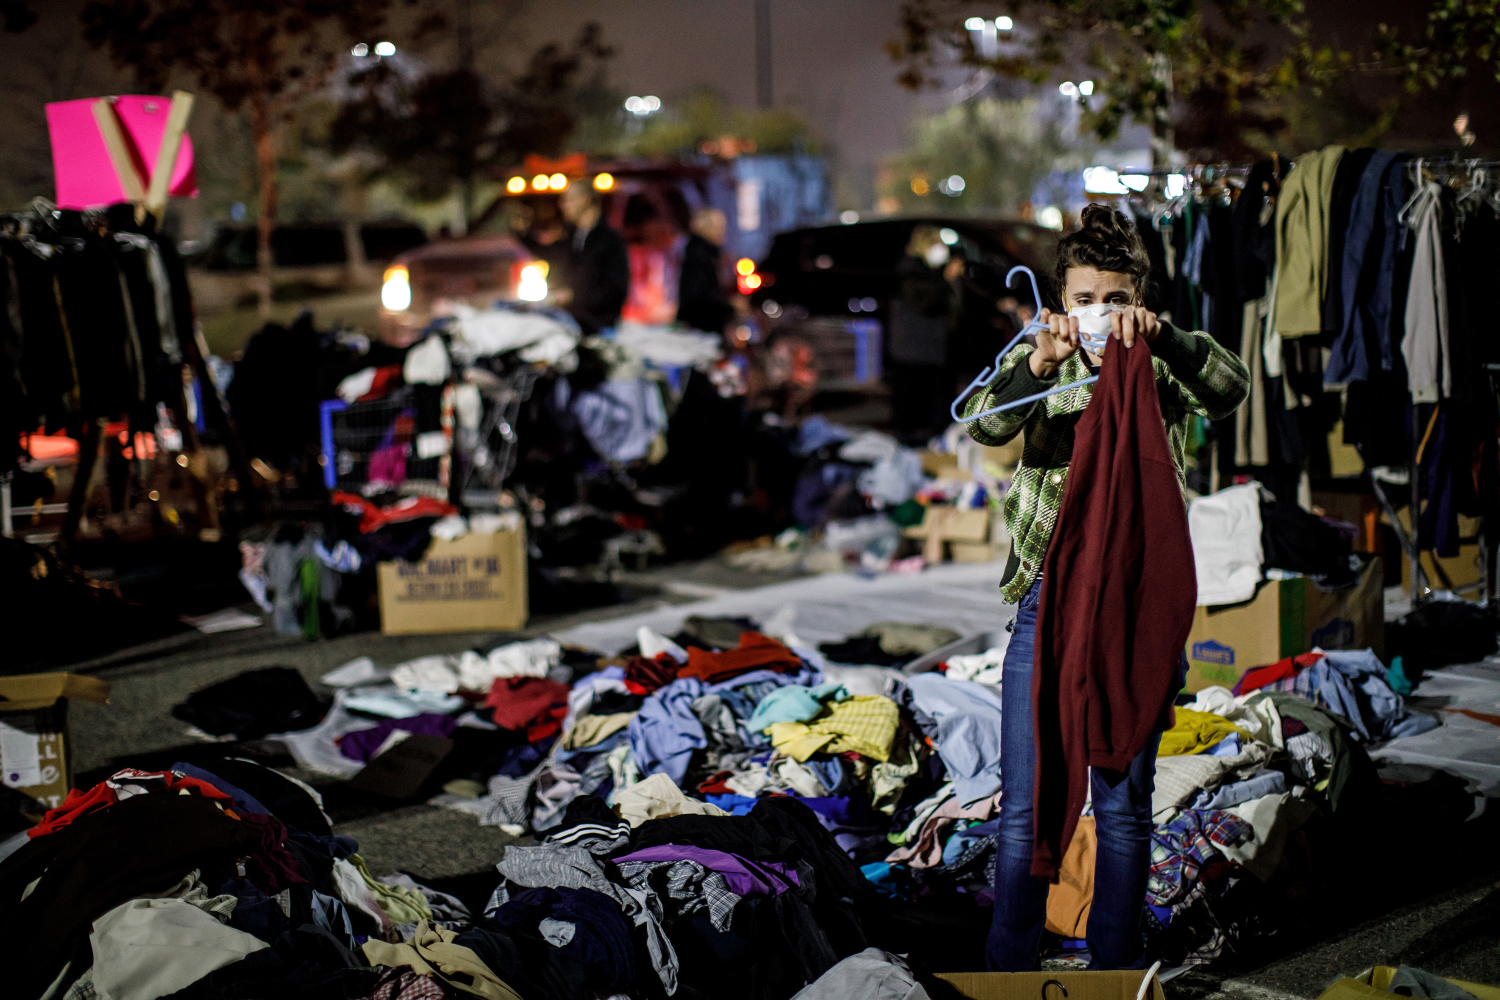 Jessica Sijan, whose family is from Paradise and lost everything to the Camp Fire, volunteers to sort out clothes for evacuees gathered at a Walmart parking lot in Chico, Calif., on Tuesday, Nov. 13, 2018. (Marcus Yam/Los Angeles Times/TNS)